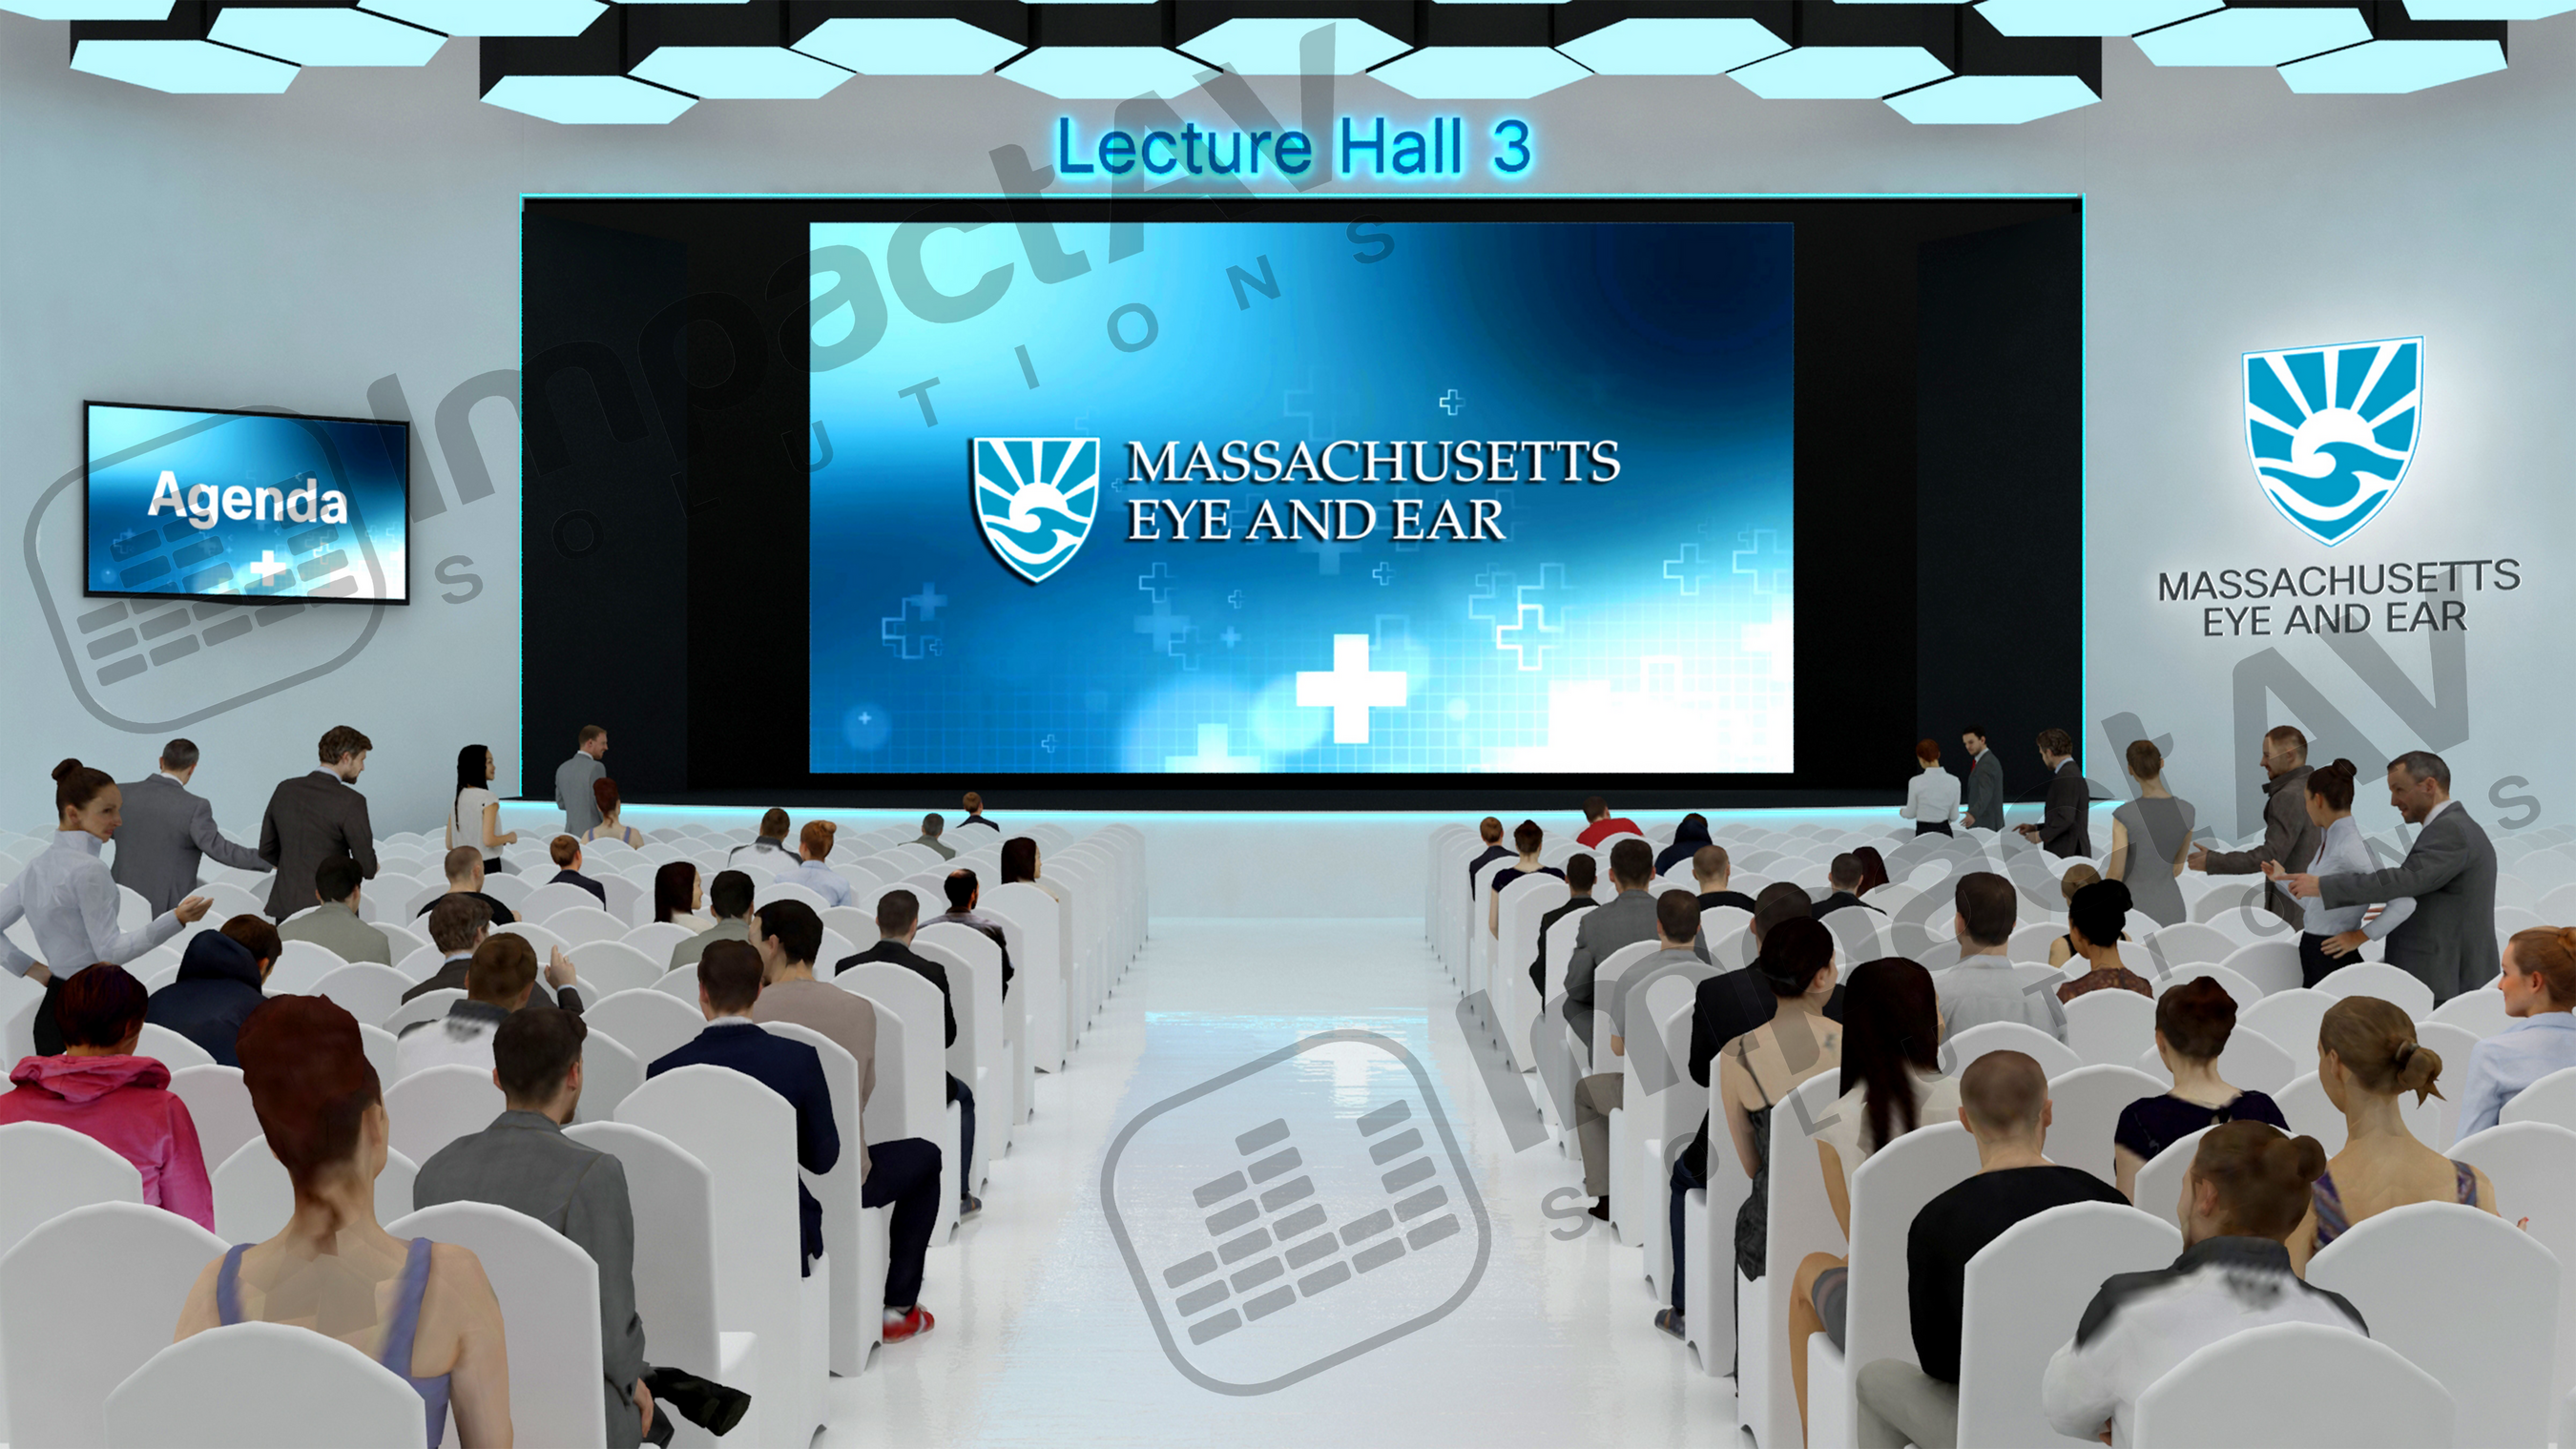 MEEI Lecture Hall